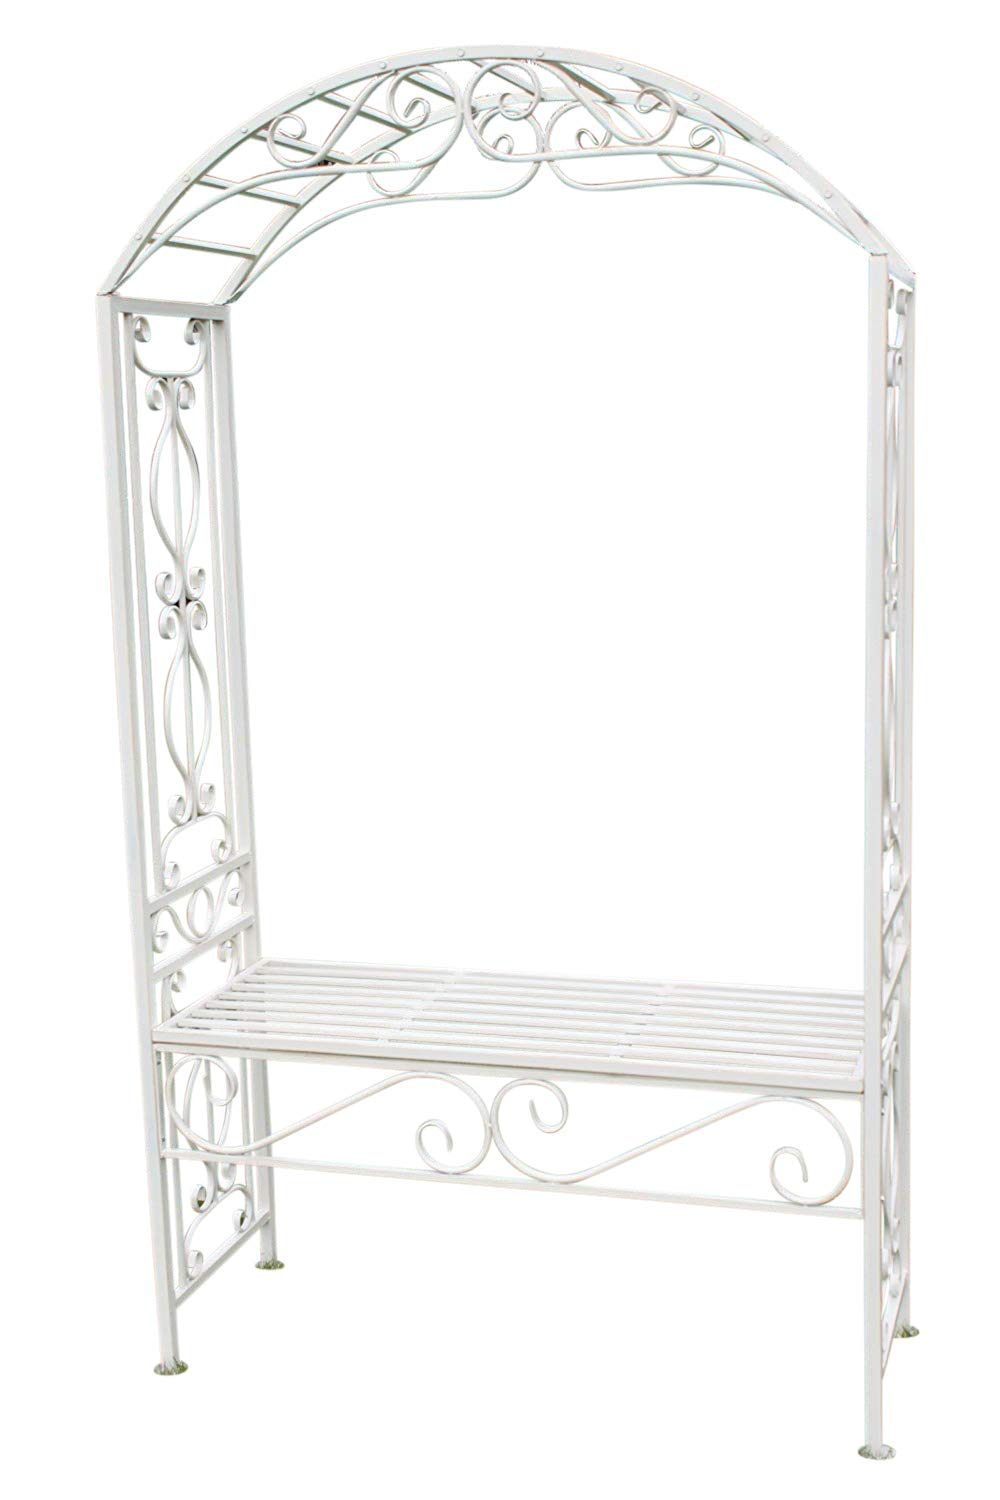 Olive Grove Versailles Style Metal Rose Arch and Seat in Antique White Finish